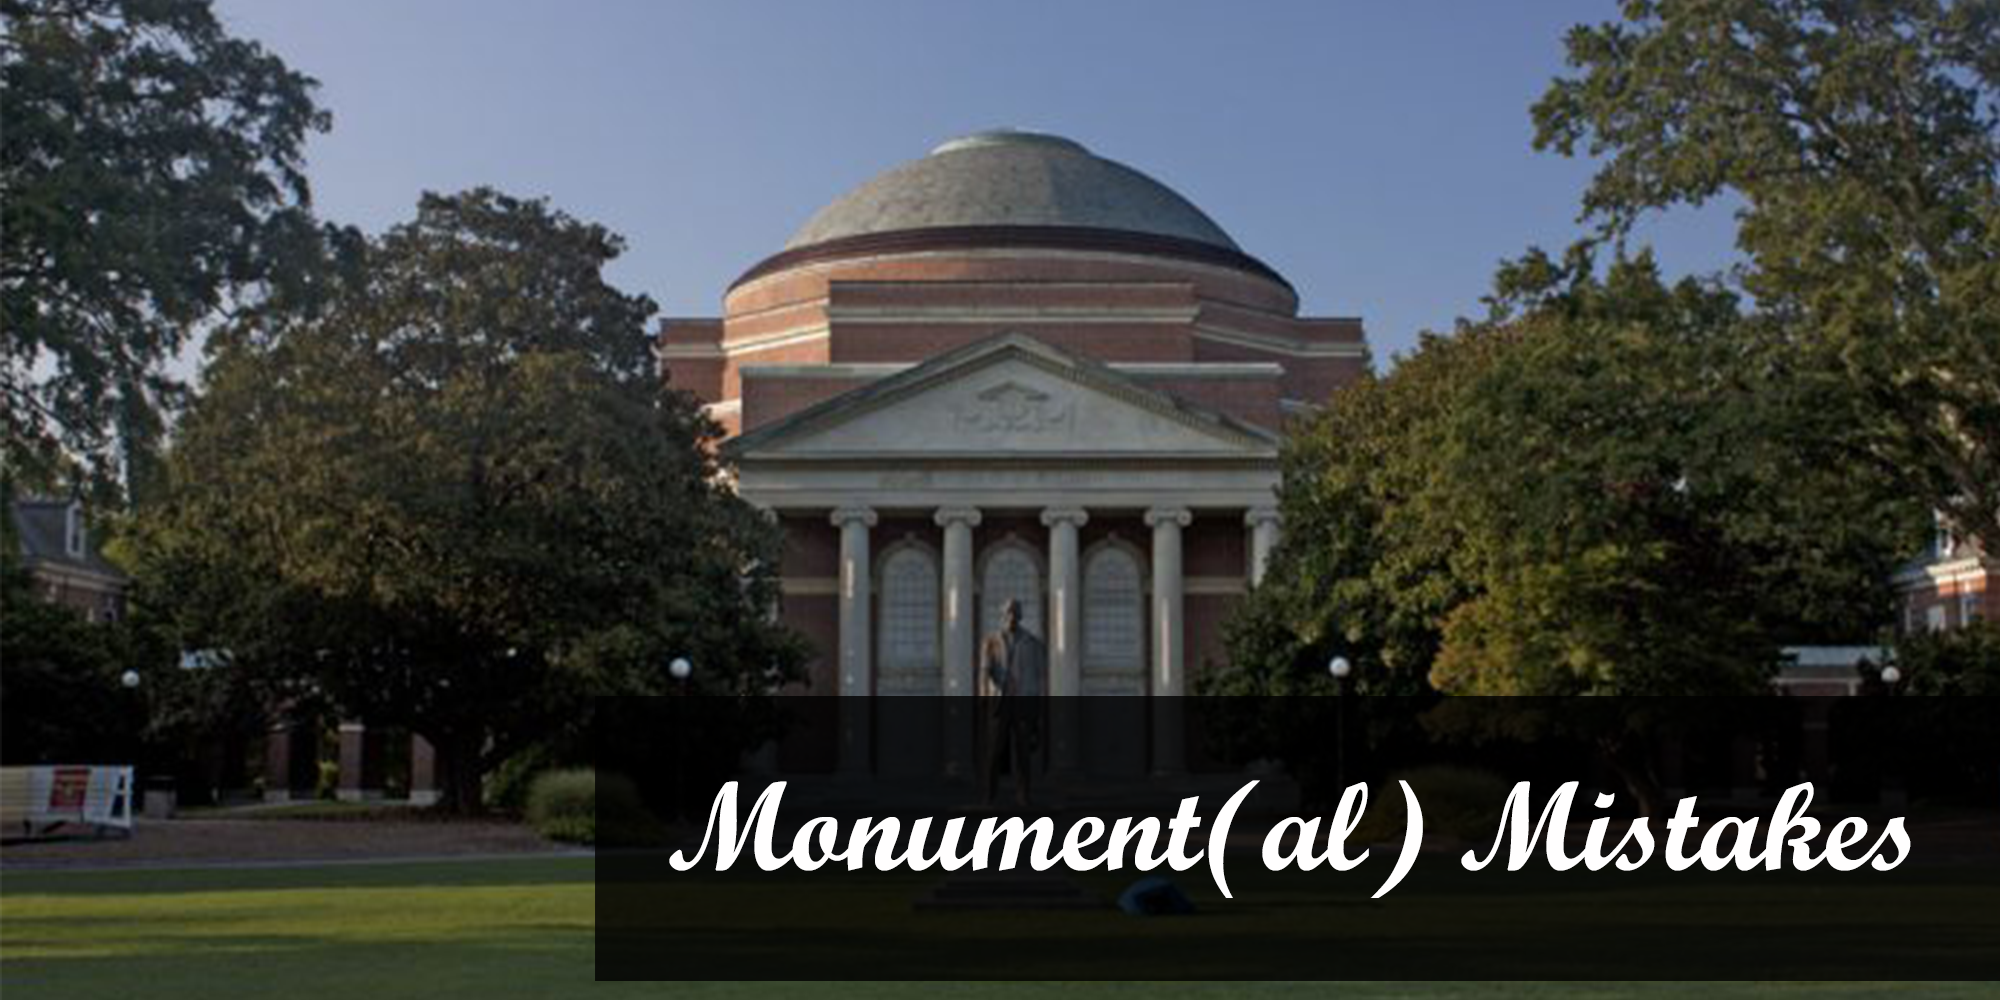 Duke university professor reflects on Confederate monuments